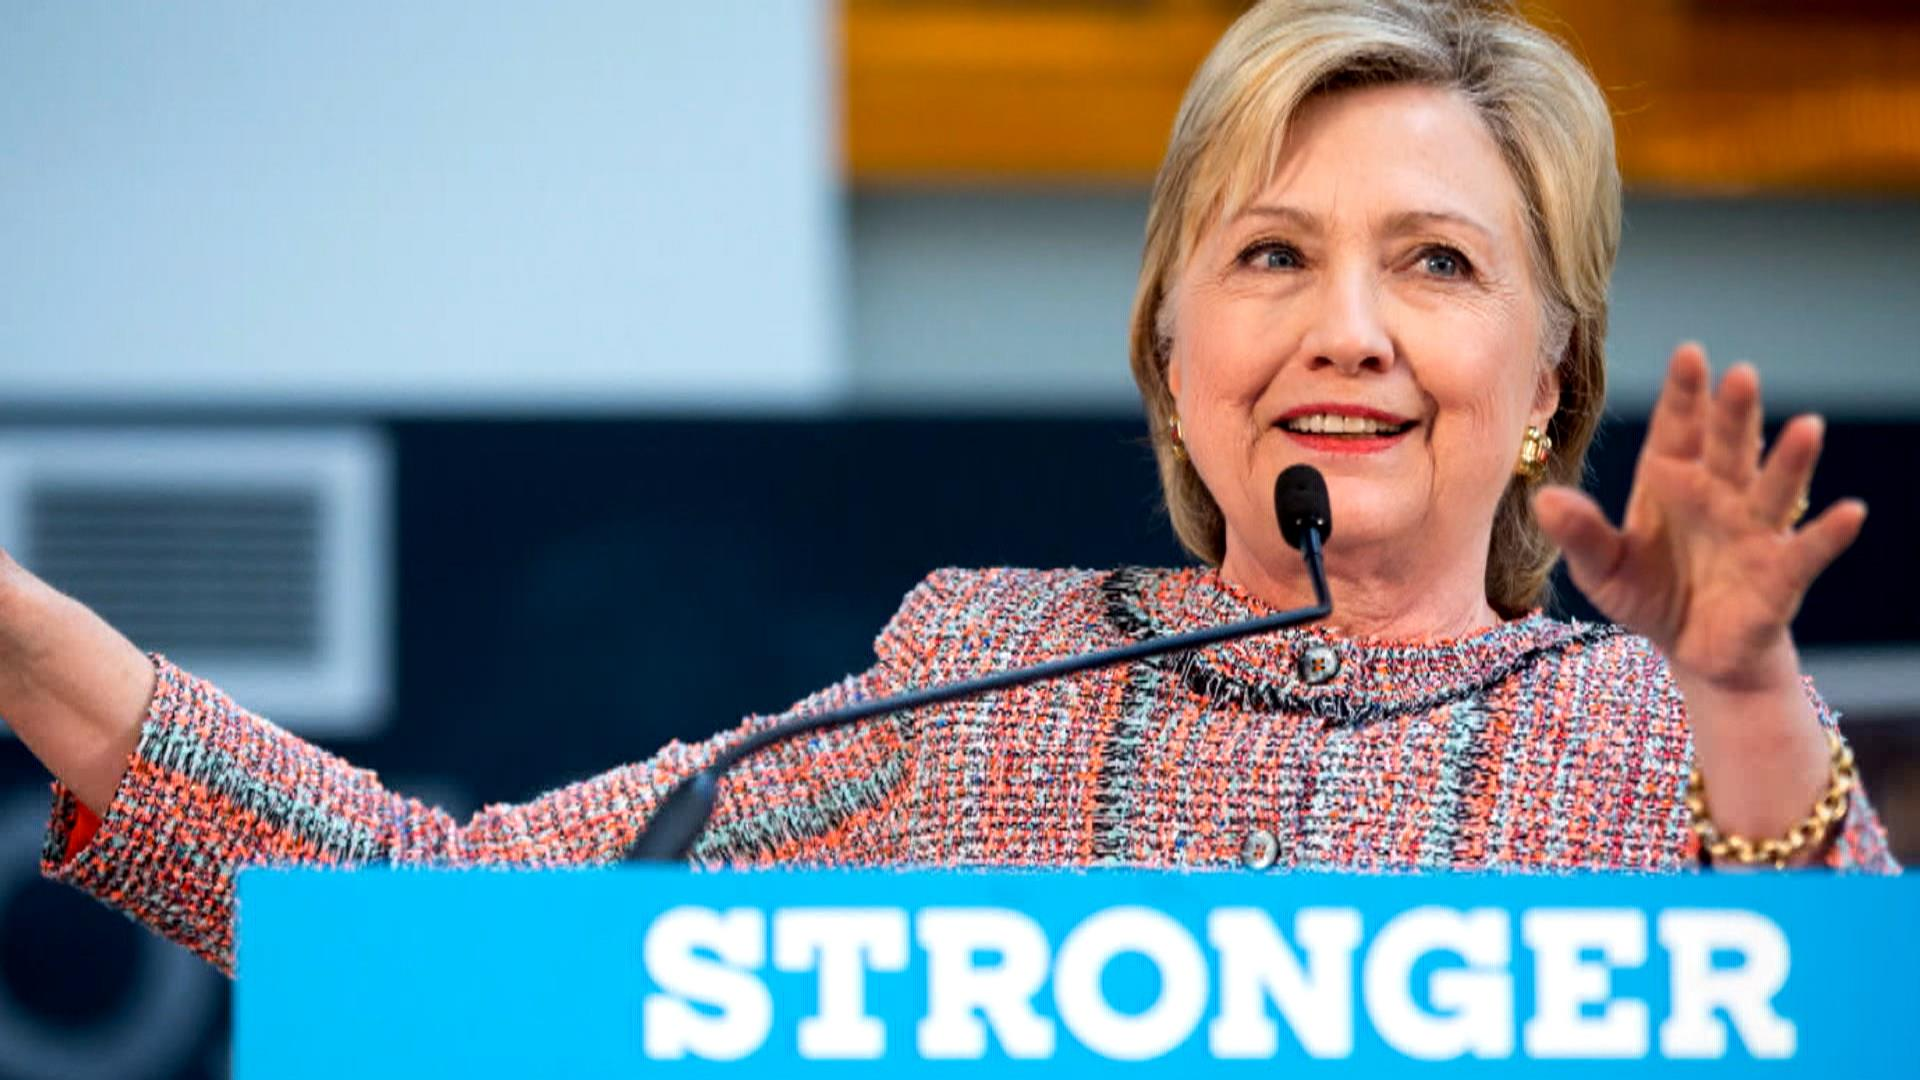 Obama Campaigns With Clinton Amid FBI Investigation